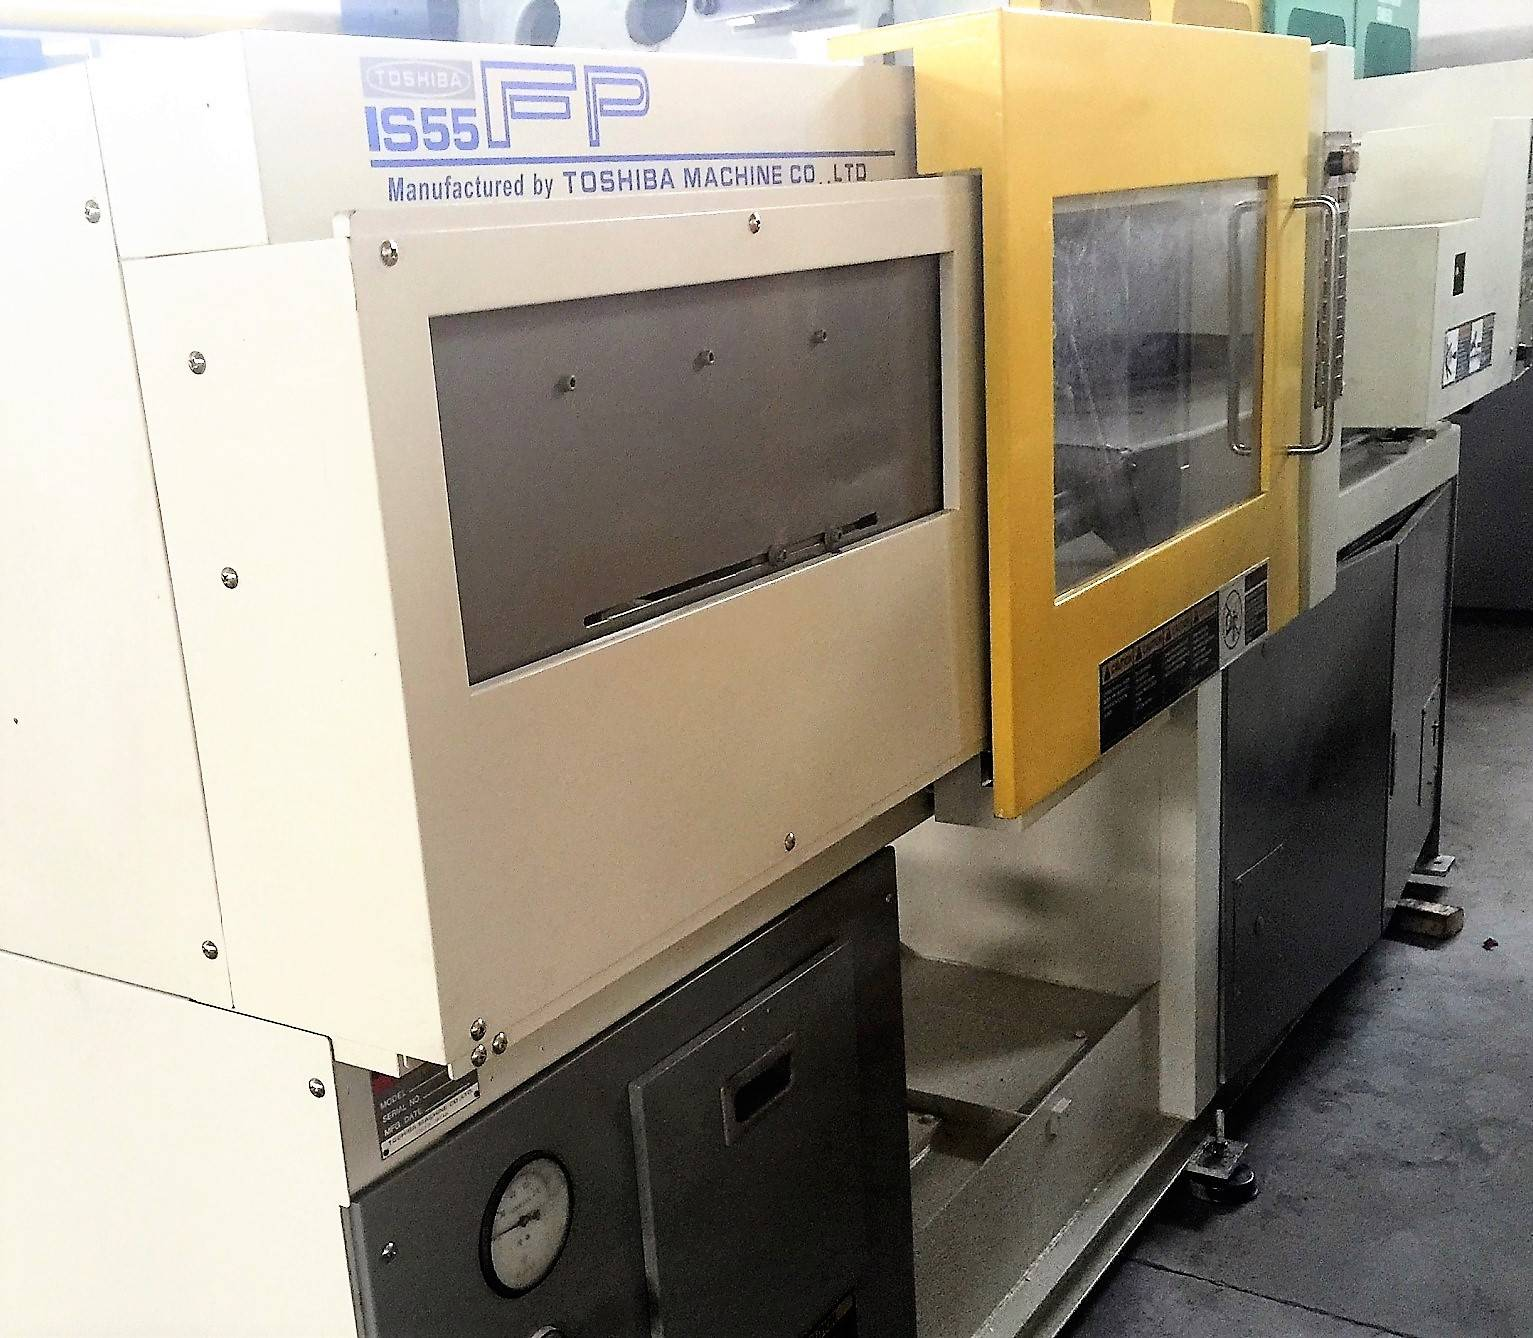 Toshiba 55t (IS55FP) used Injection Molding Machine Featured Image